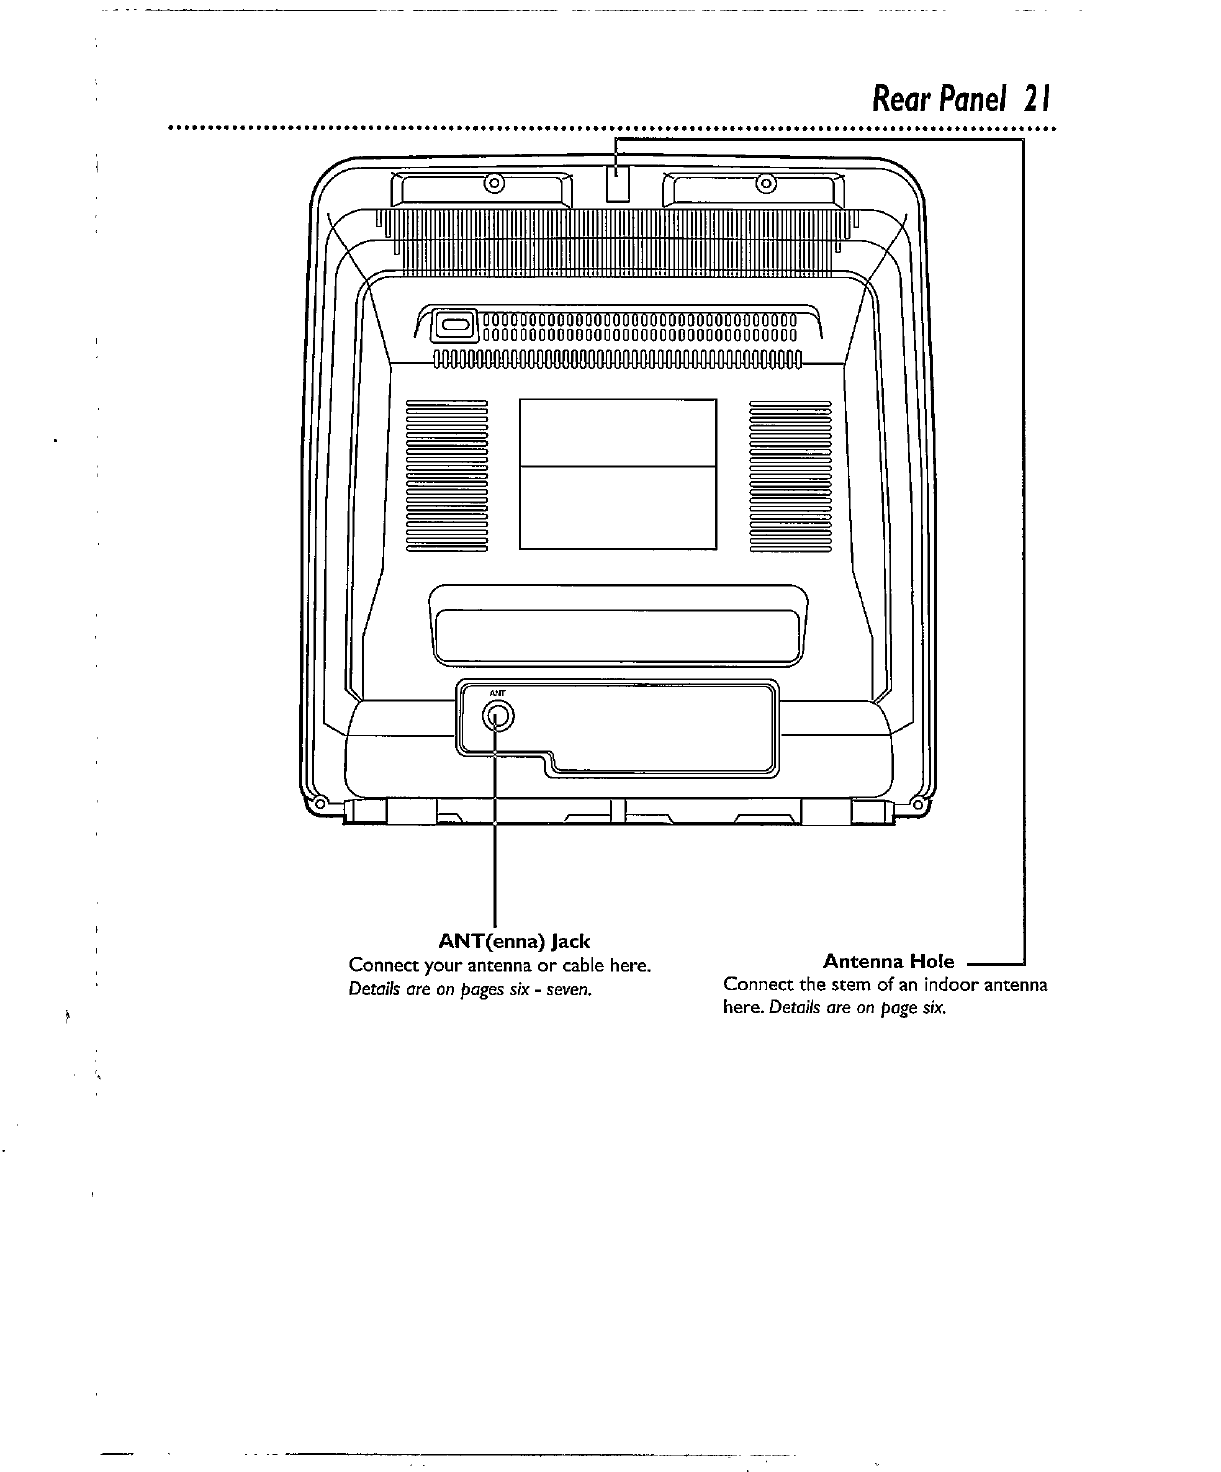 Page 21 of Magnavox VCR CCX132AT User Guide